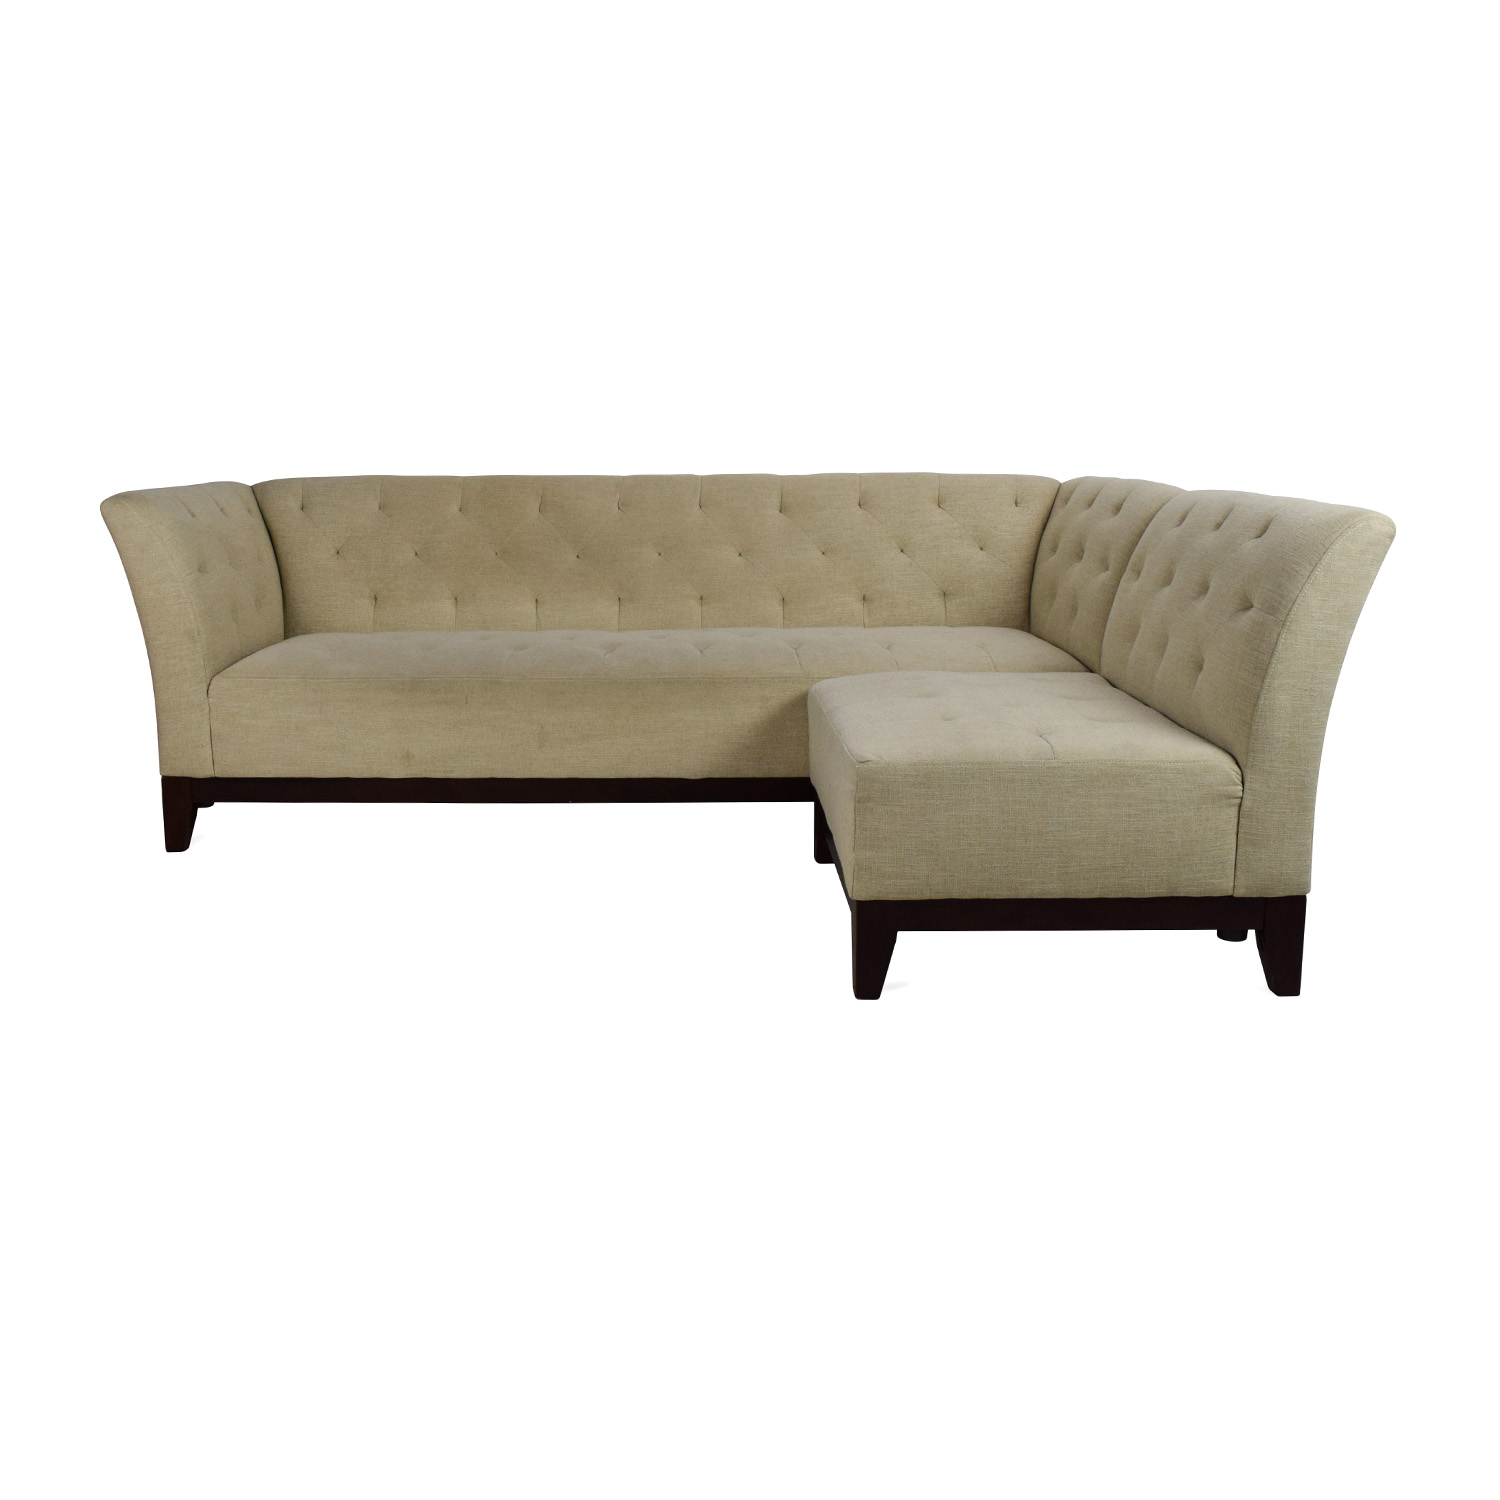 Macys Tufted Sofa With Modular Chaise / Sectionals